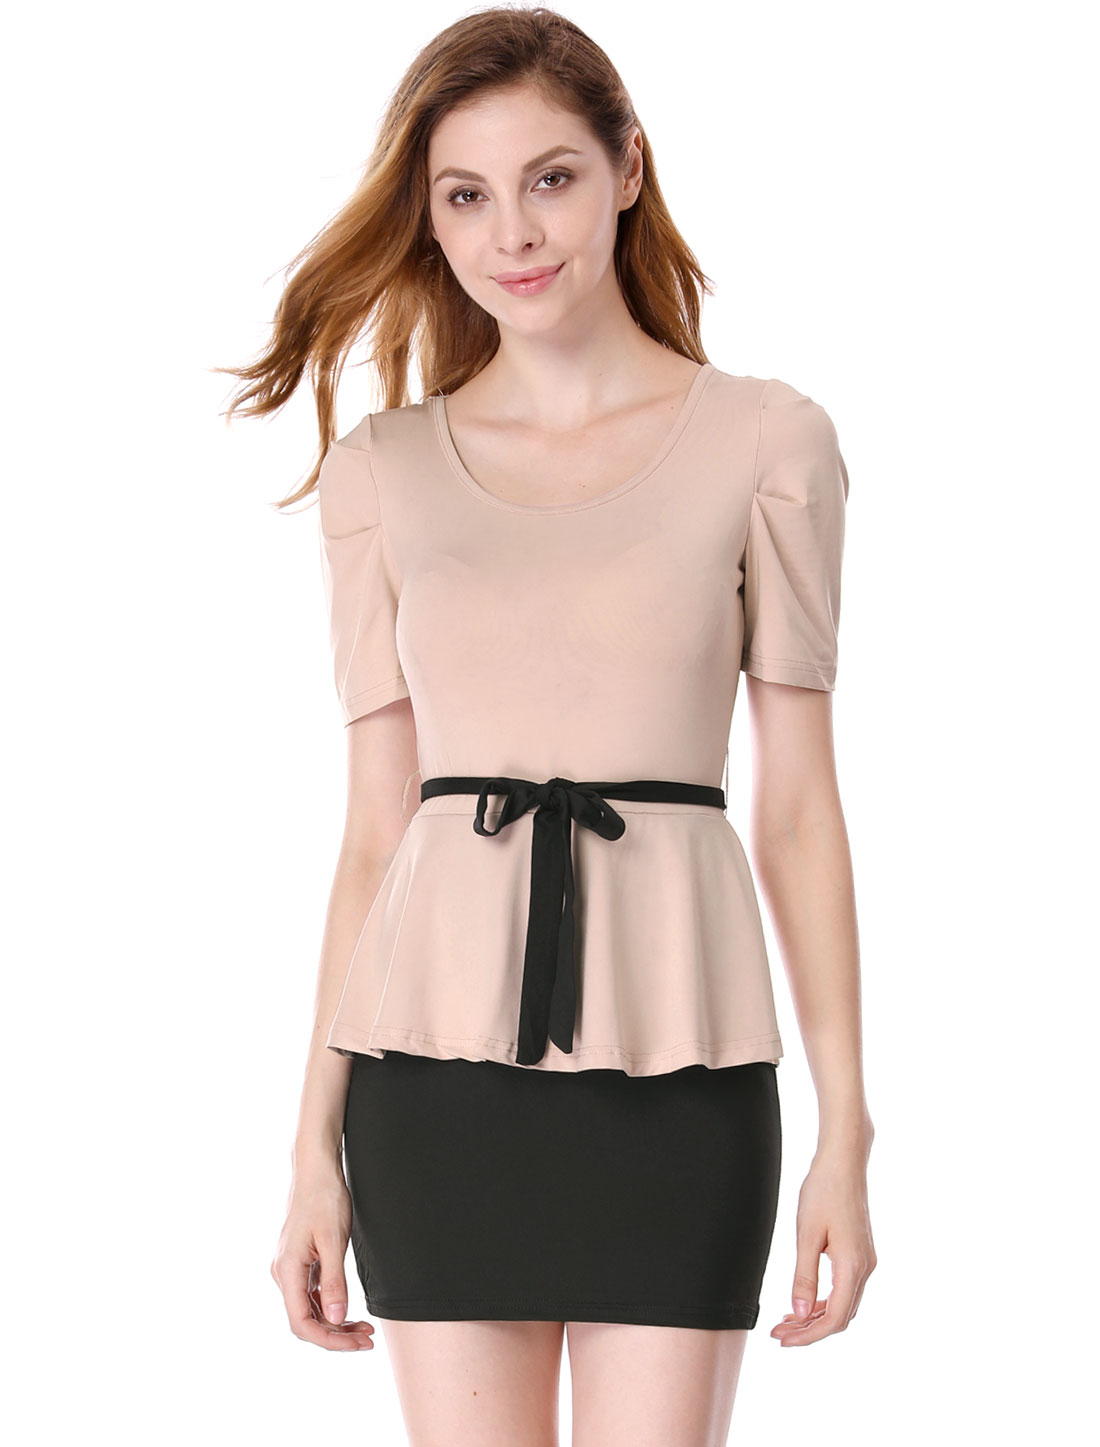 Ladies Scoop Neck Short Puff Sleeve Chic Pink Black Peplum Min Dress S